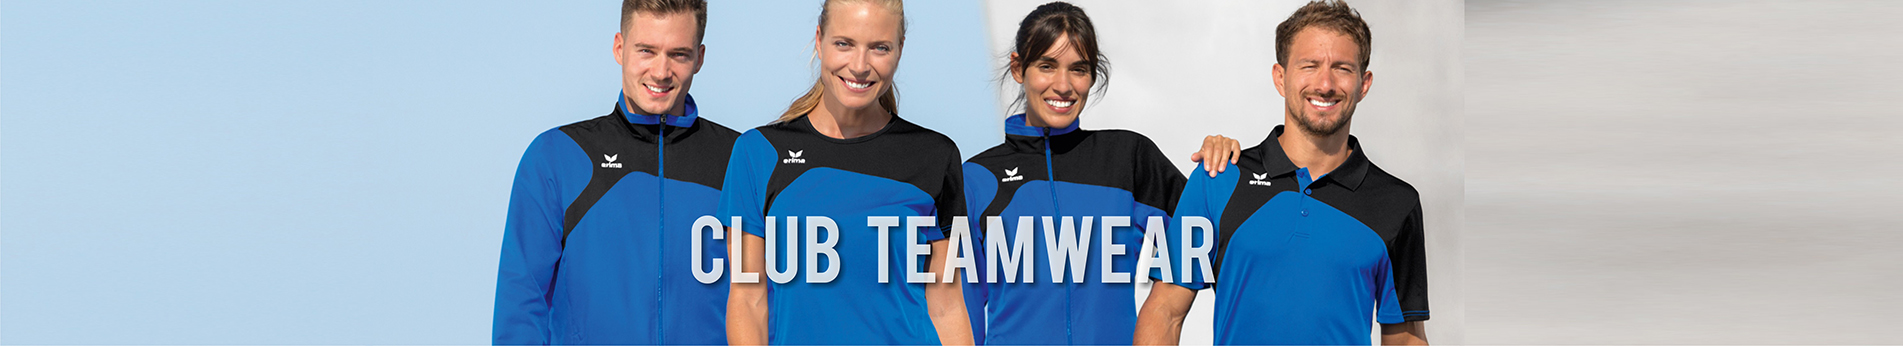 Club Teamwear MAIN PIC